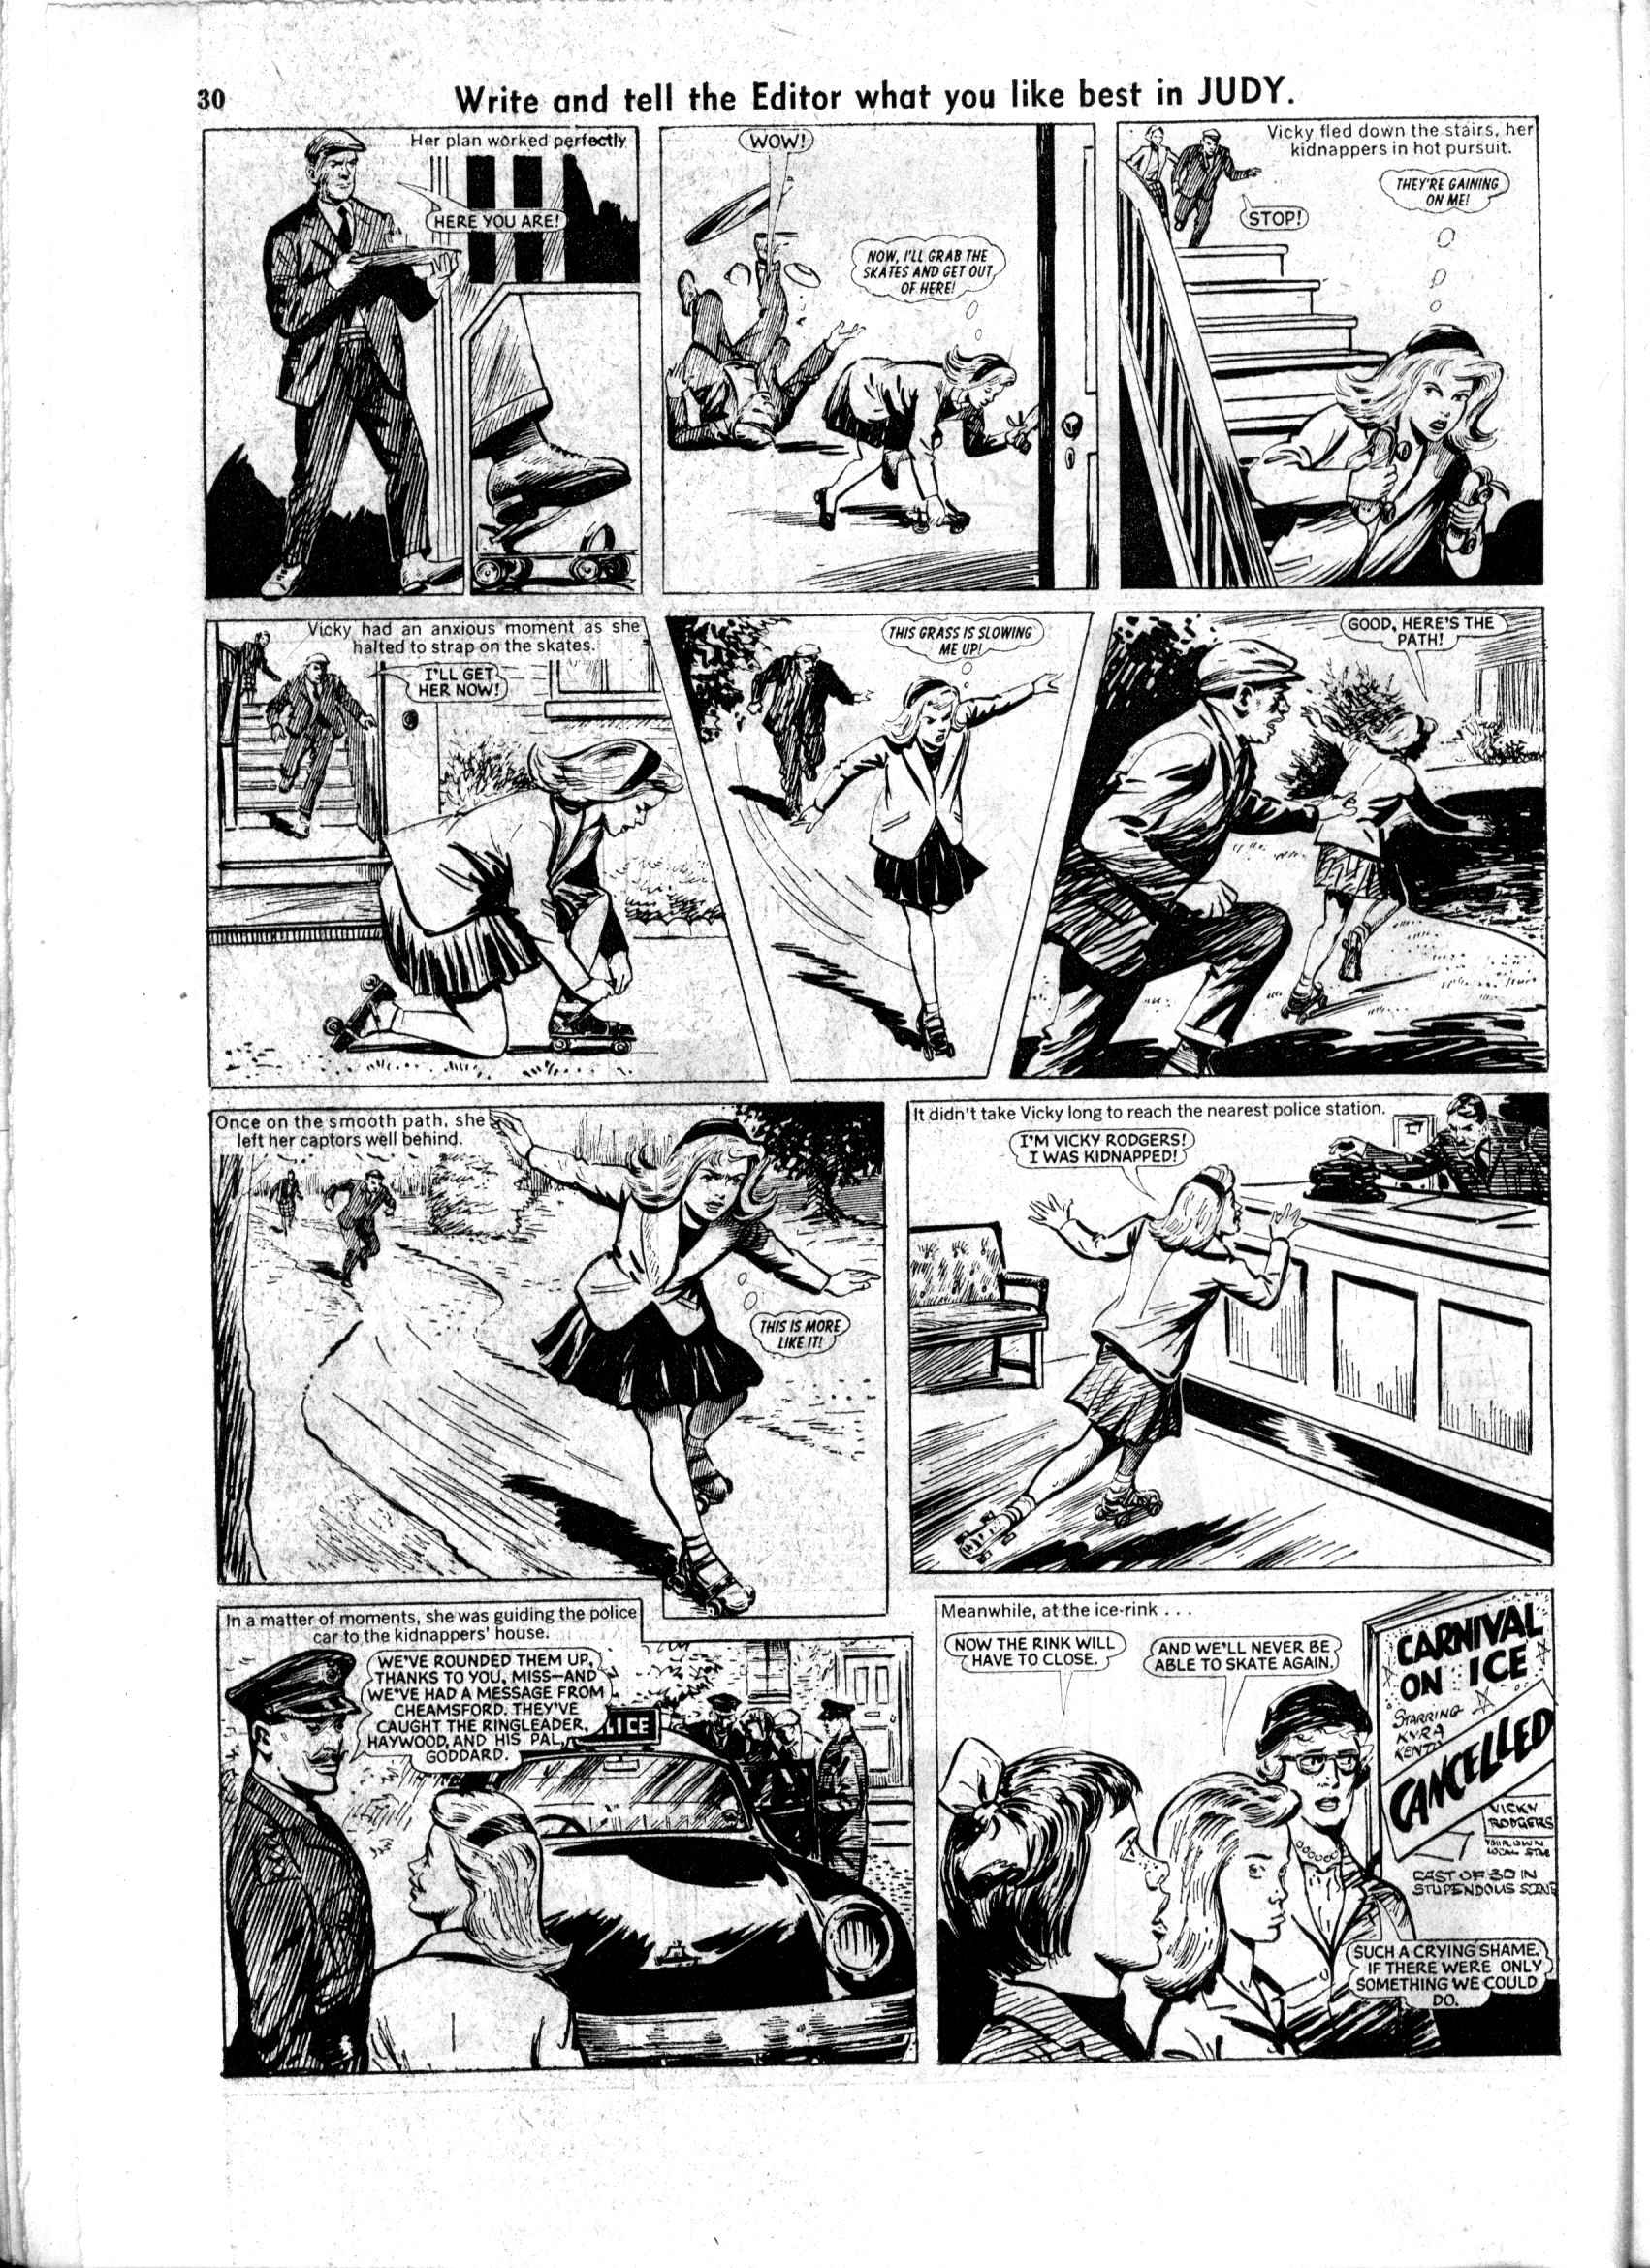 Read online Judy comic -  Issue #168 - 30